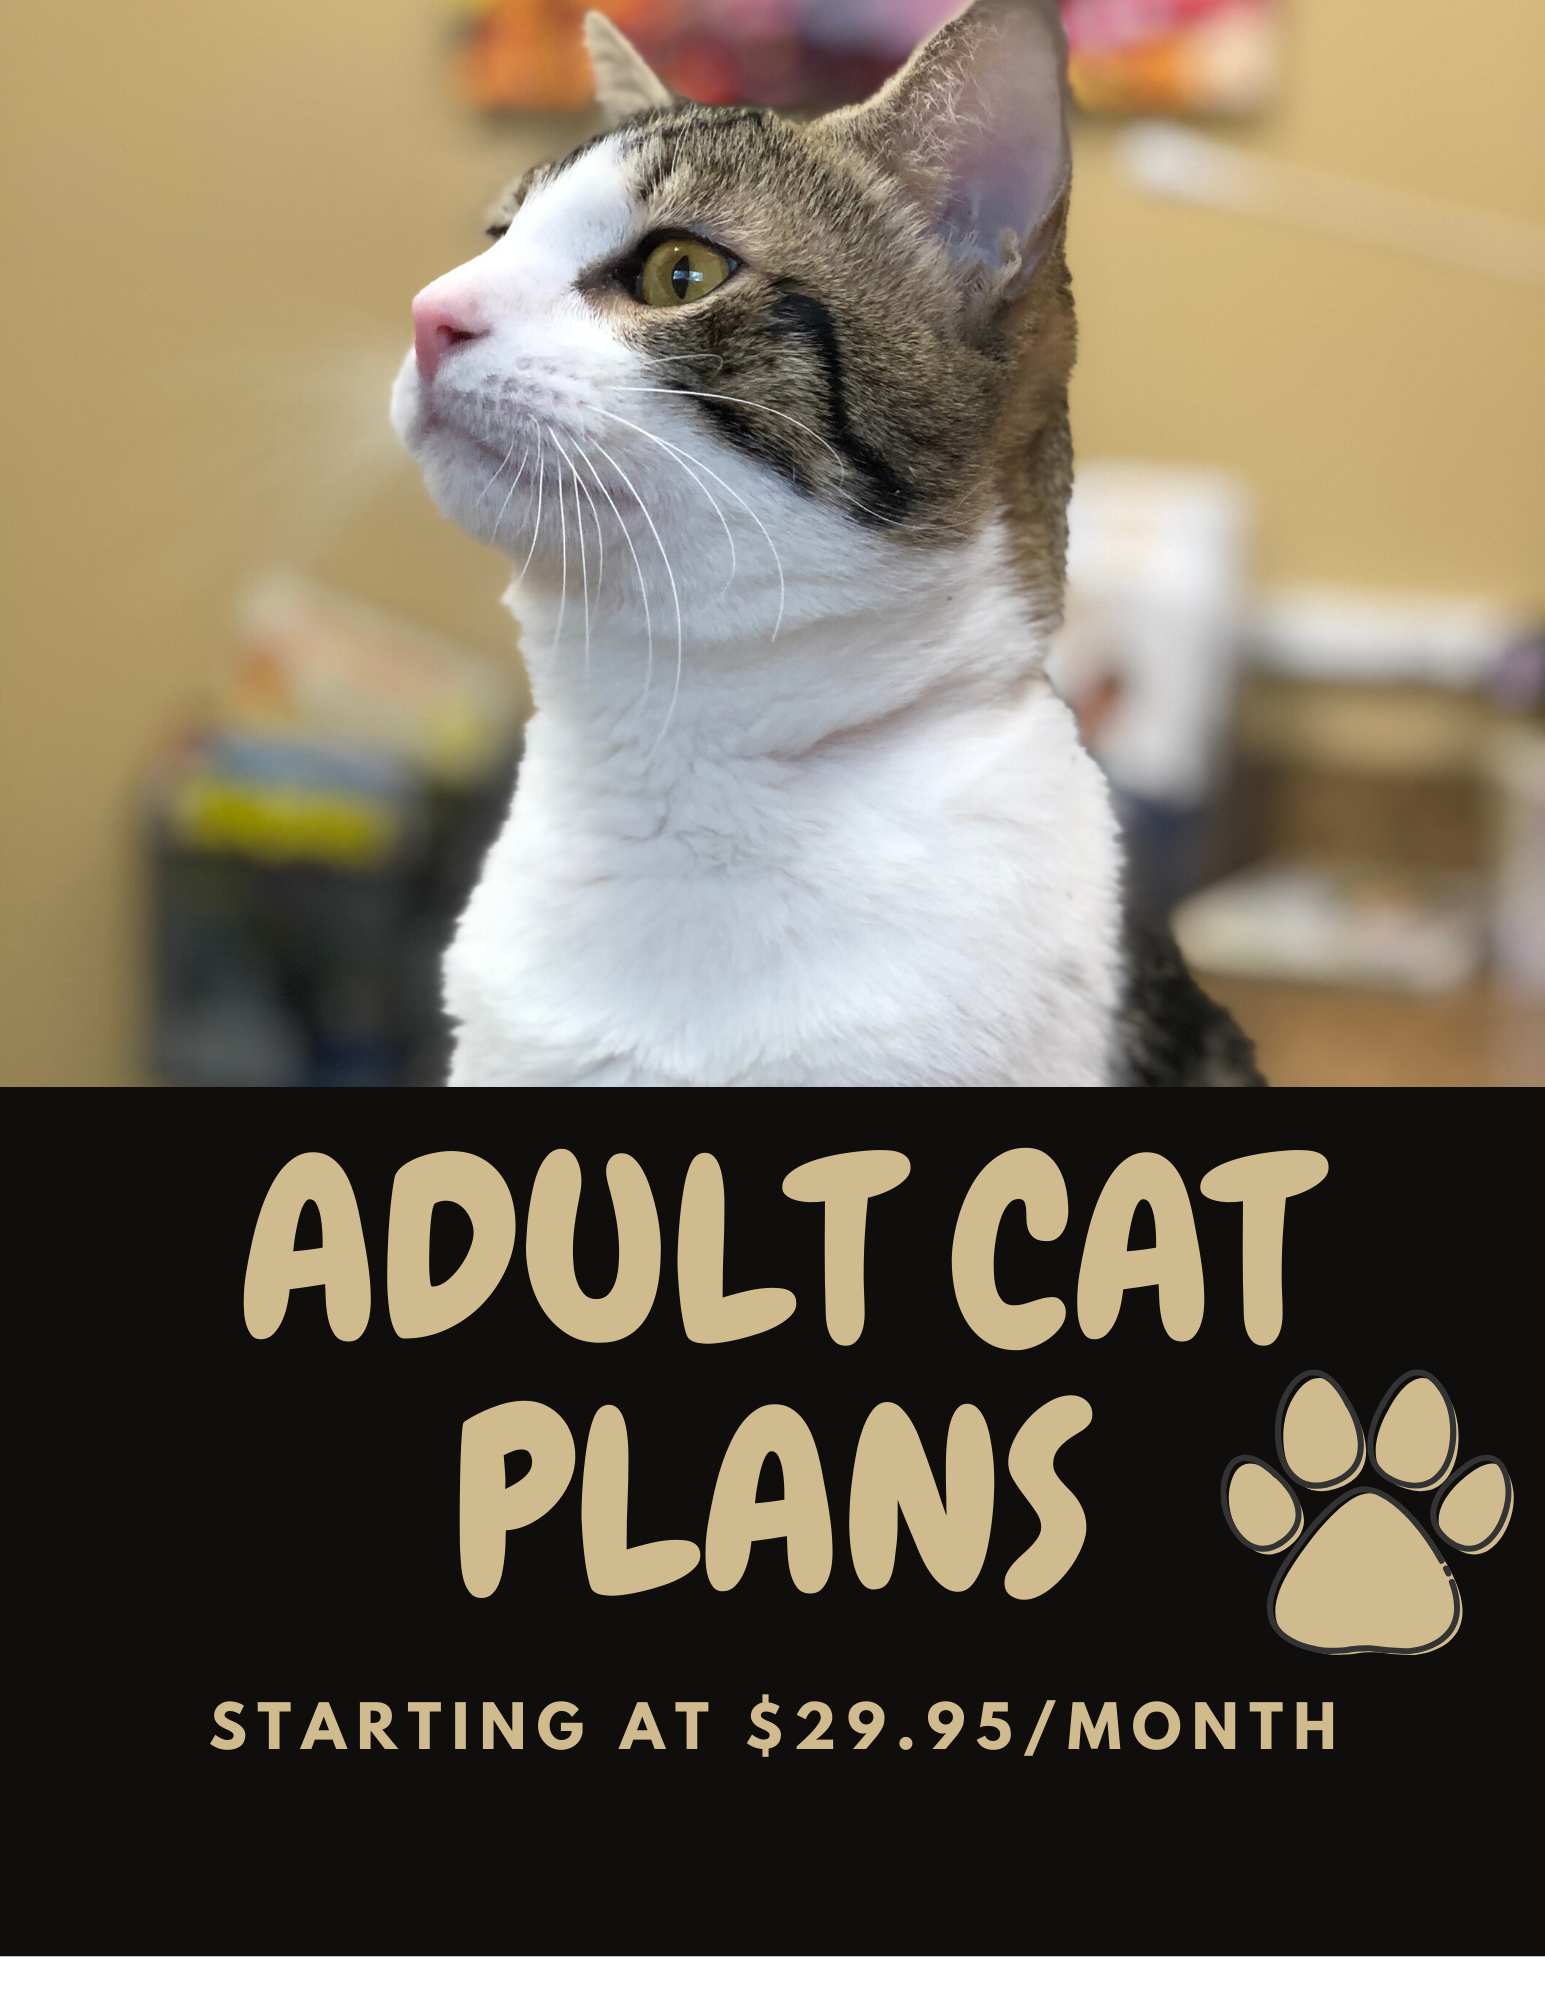 ADULT CAT PLANS WEBSITE